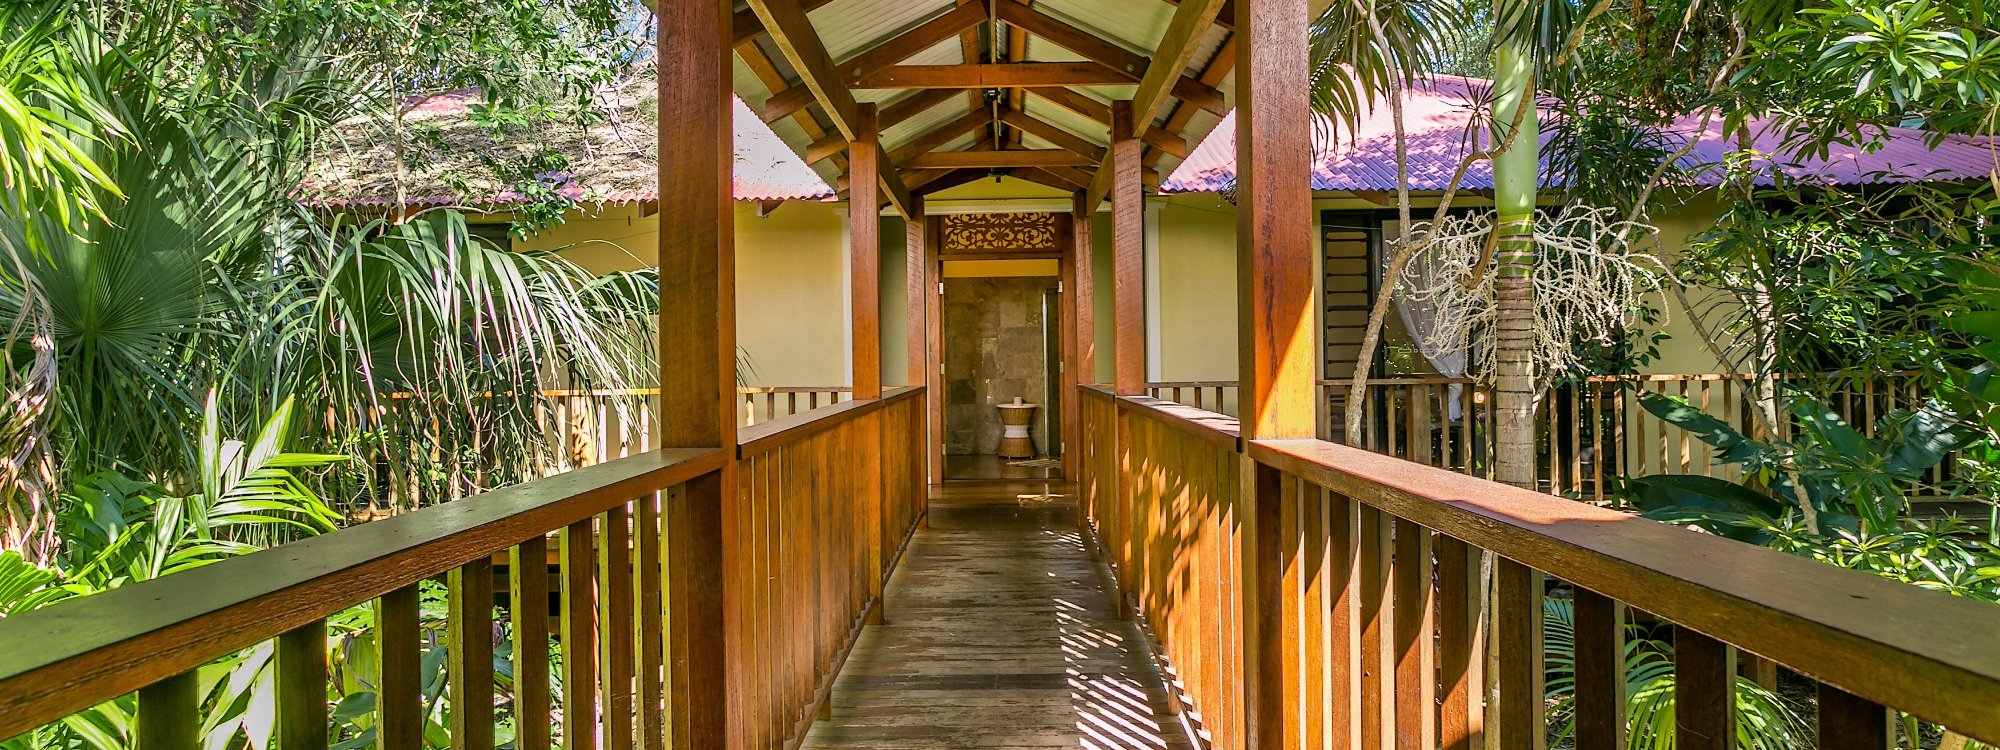 Casa Dan - Pavilion walkway towards bedrooms